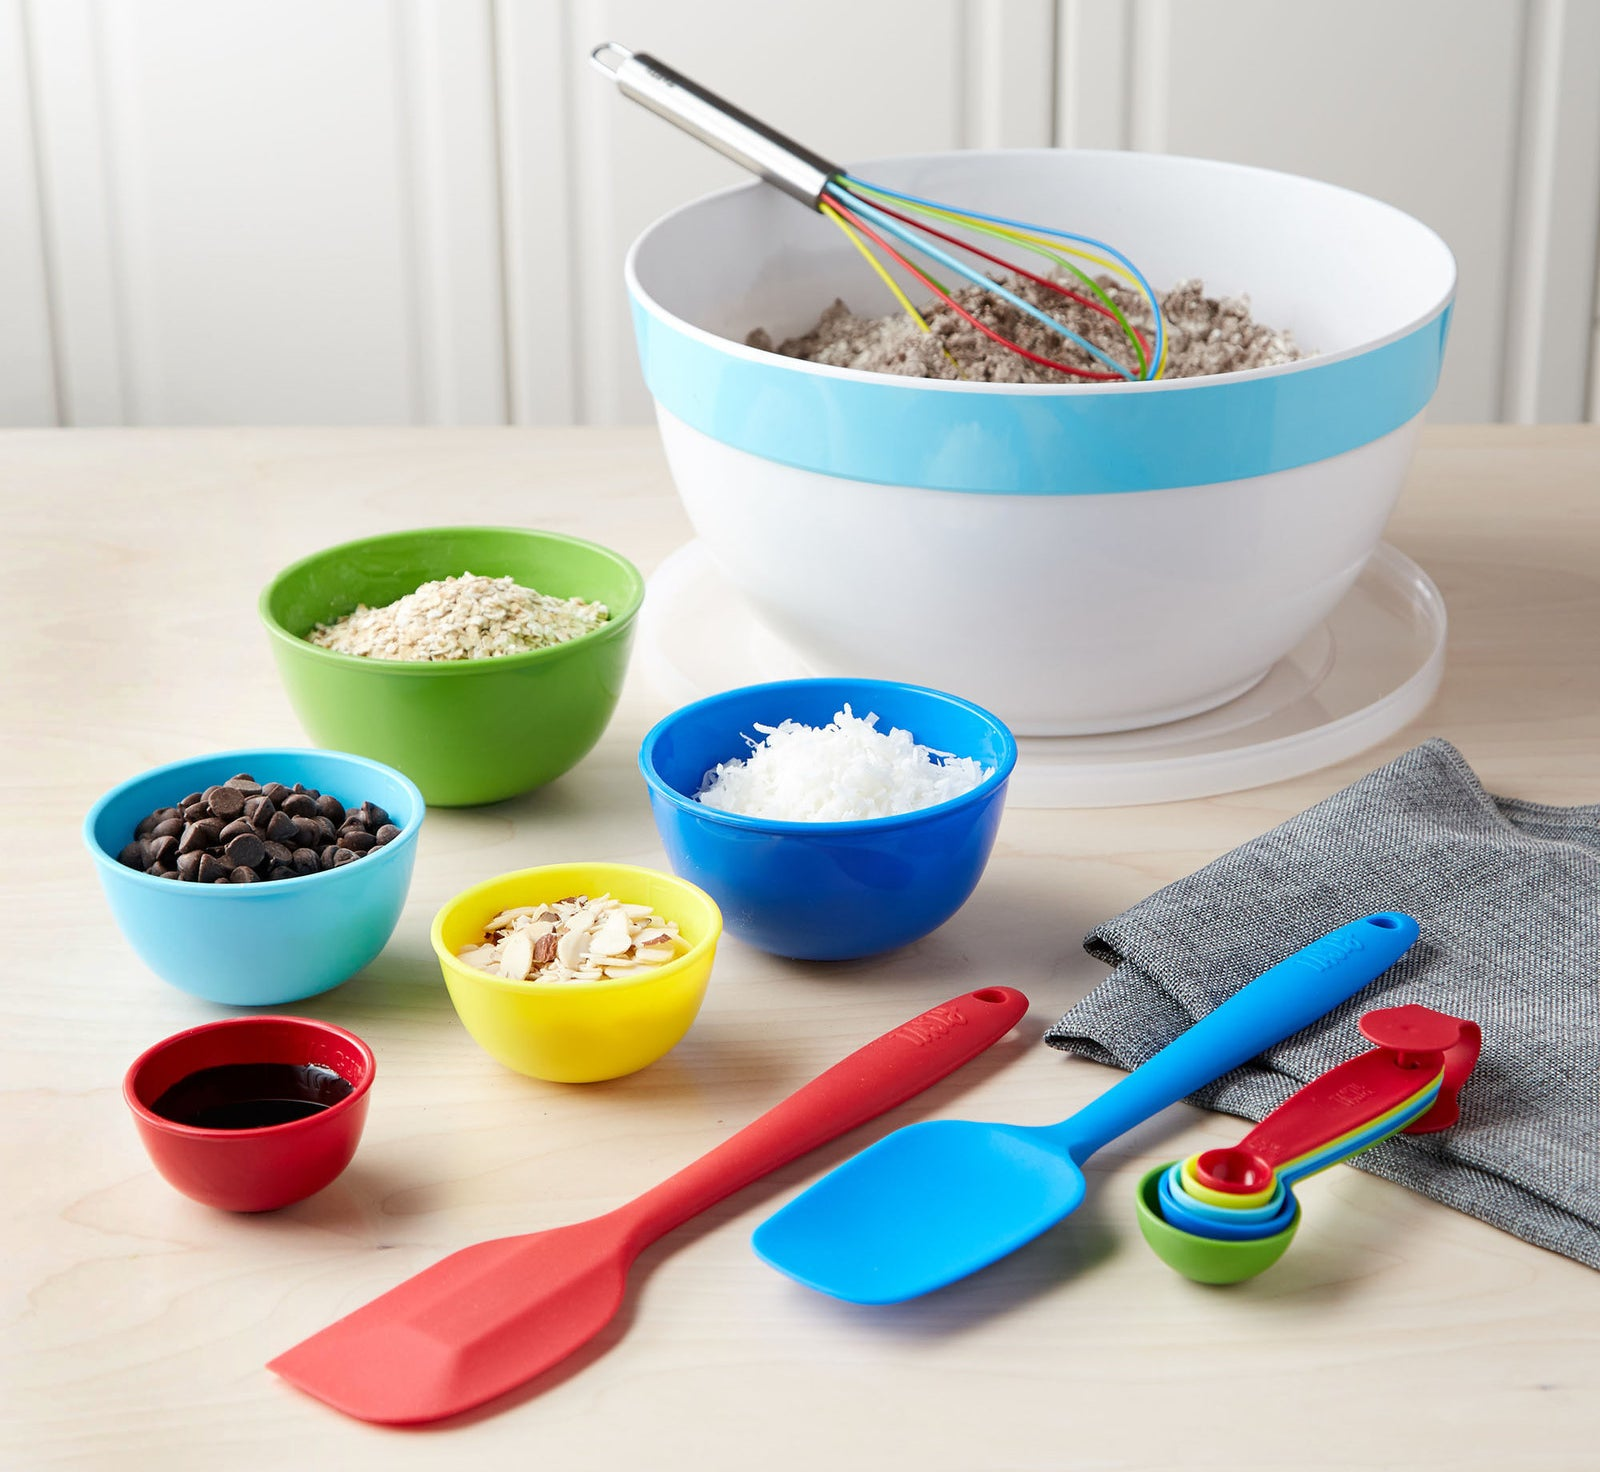 """Includes a 7 qt. mixing bowl with lid, a silicone spatula, a silicone whisk, a silicone spoonula, a five-piece measuring spoon set (one 1 tbsp., one 1/2 tbsp., one 1 tsp., one 1/2 tsp., and one 1/4 tsp.), and a five-piece measuring bowl set (with measurements ranging from 1/8 cup to two cups). Promising review: """"The colors are the first thing that drew me to this set. The fact that the utensils are silicone is a bonus! No more scraped cookware from my kids helping with their favorite recipes. Every kitchen needs this fun set of basics, especially if you have little ones who love to help."""" —EilujdGet it from BuzzFeed's Tasty collection at Walmart for $16.49 (originally $19.96)."""